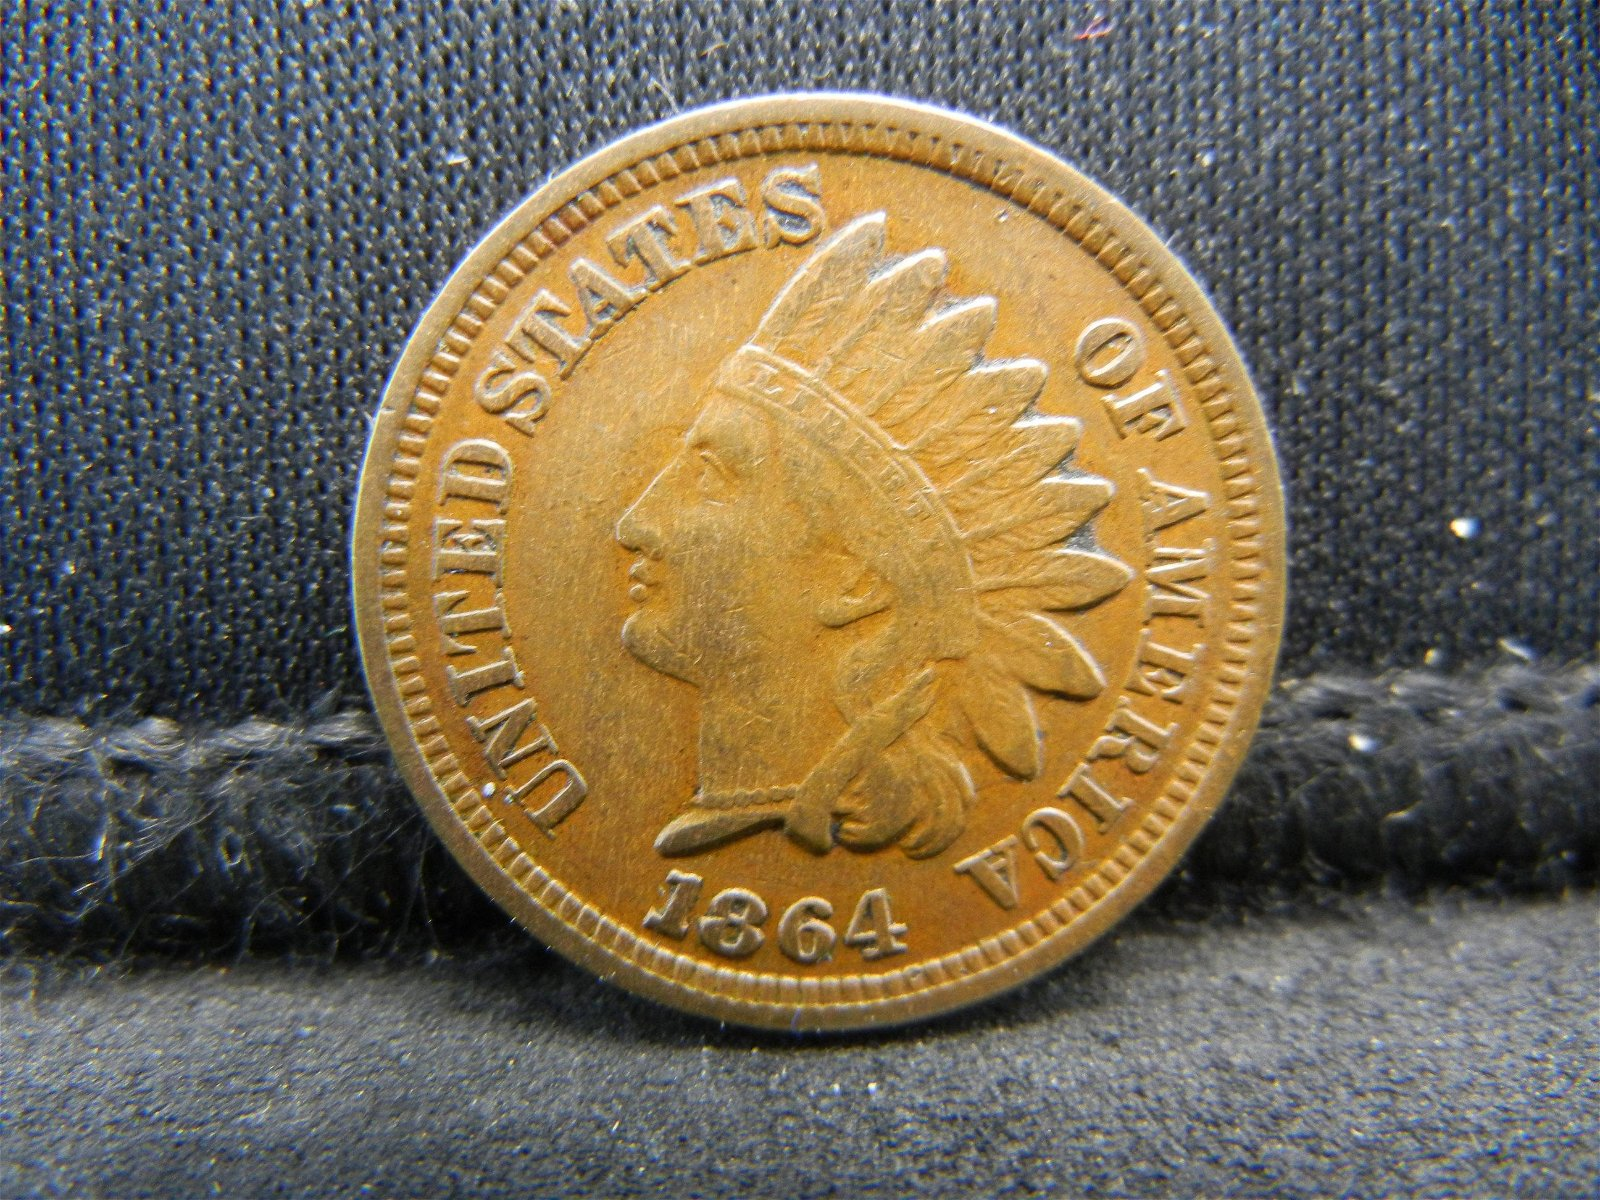 1864 United States Indian Head Penny Cent - VF - Civil